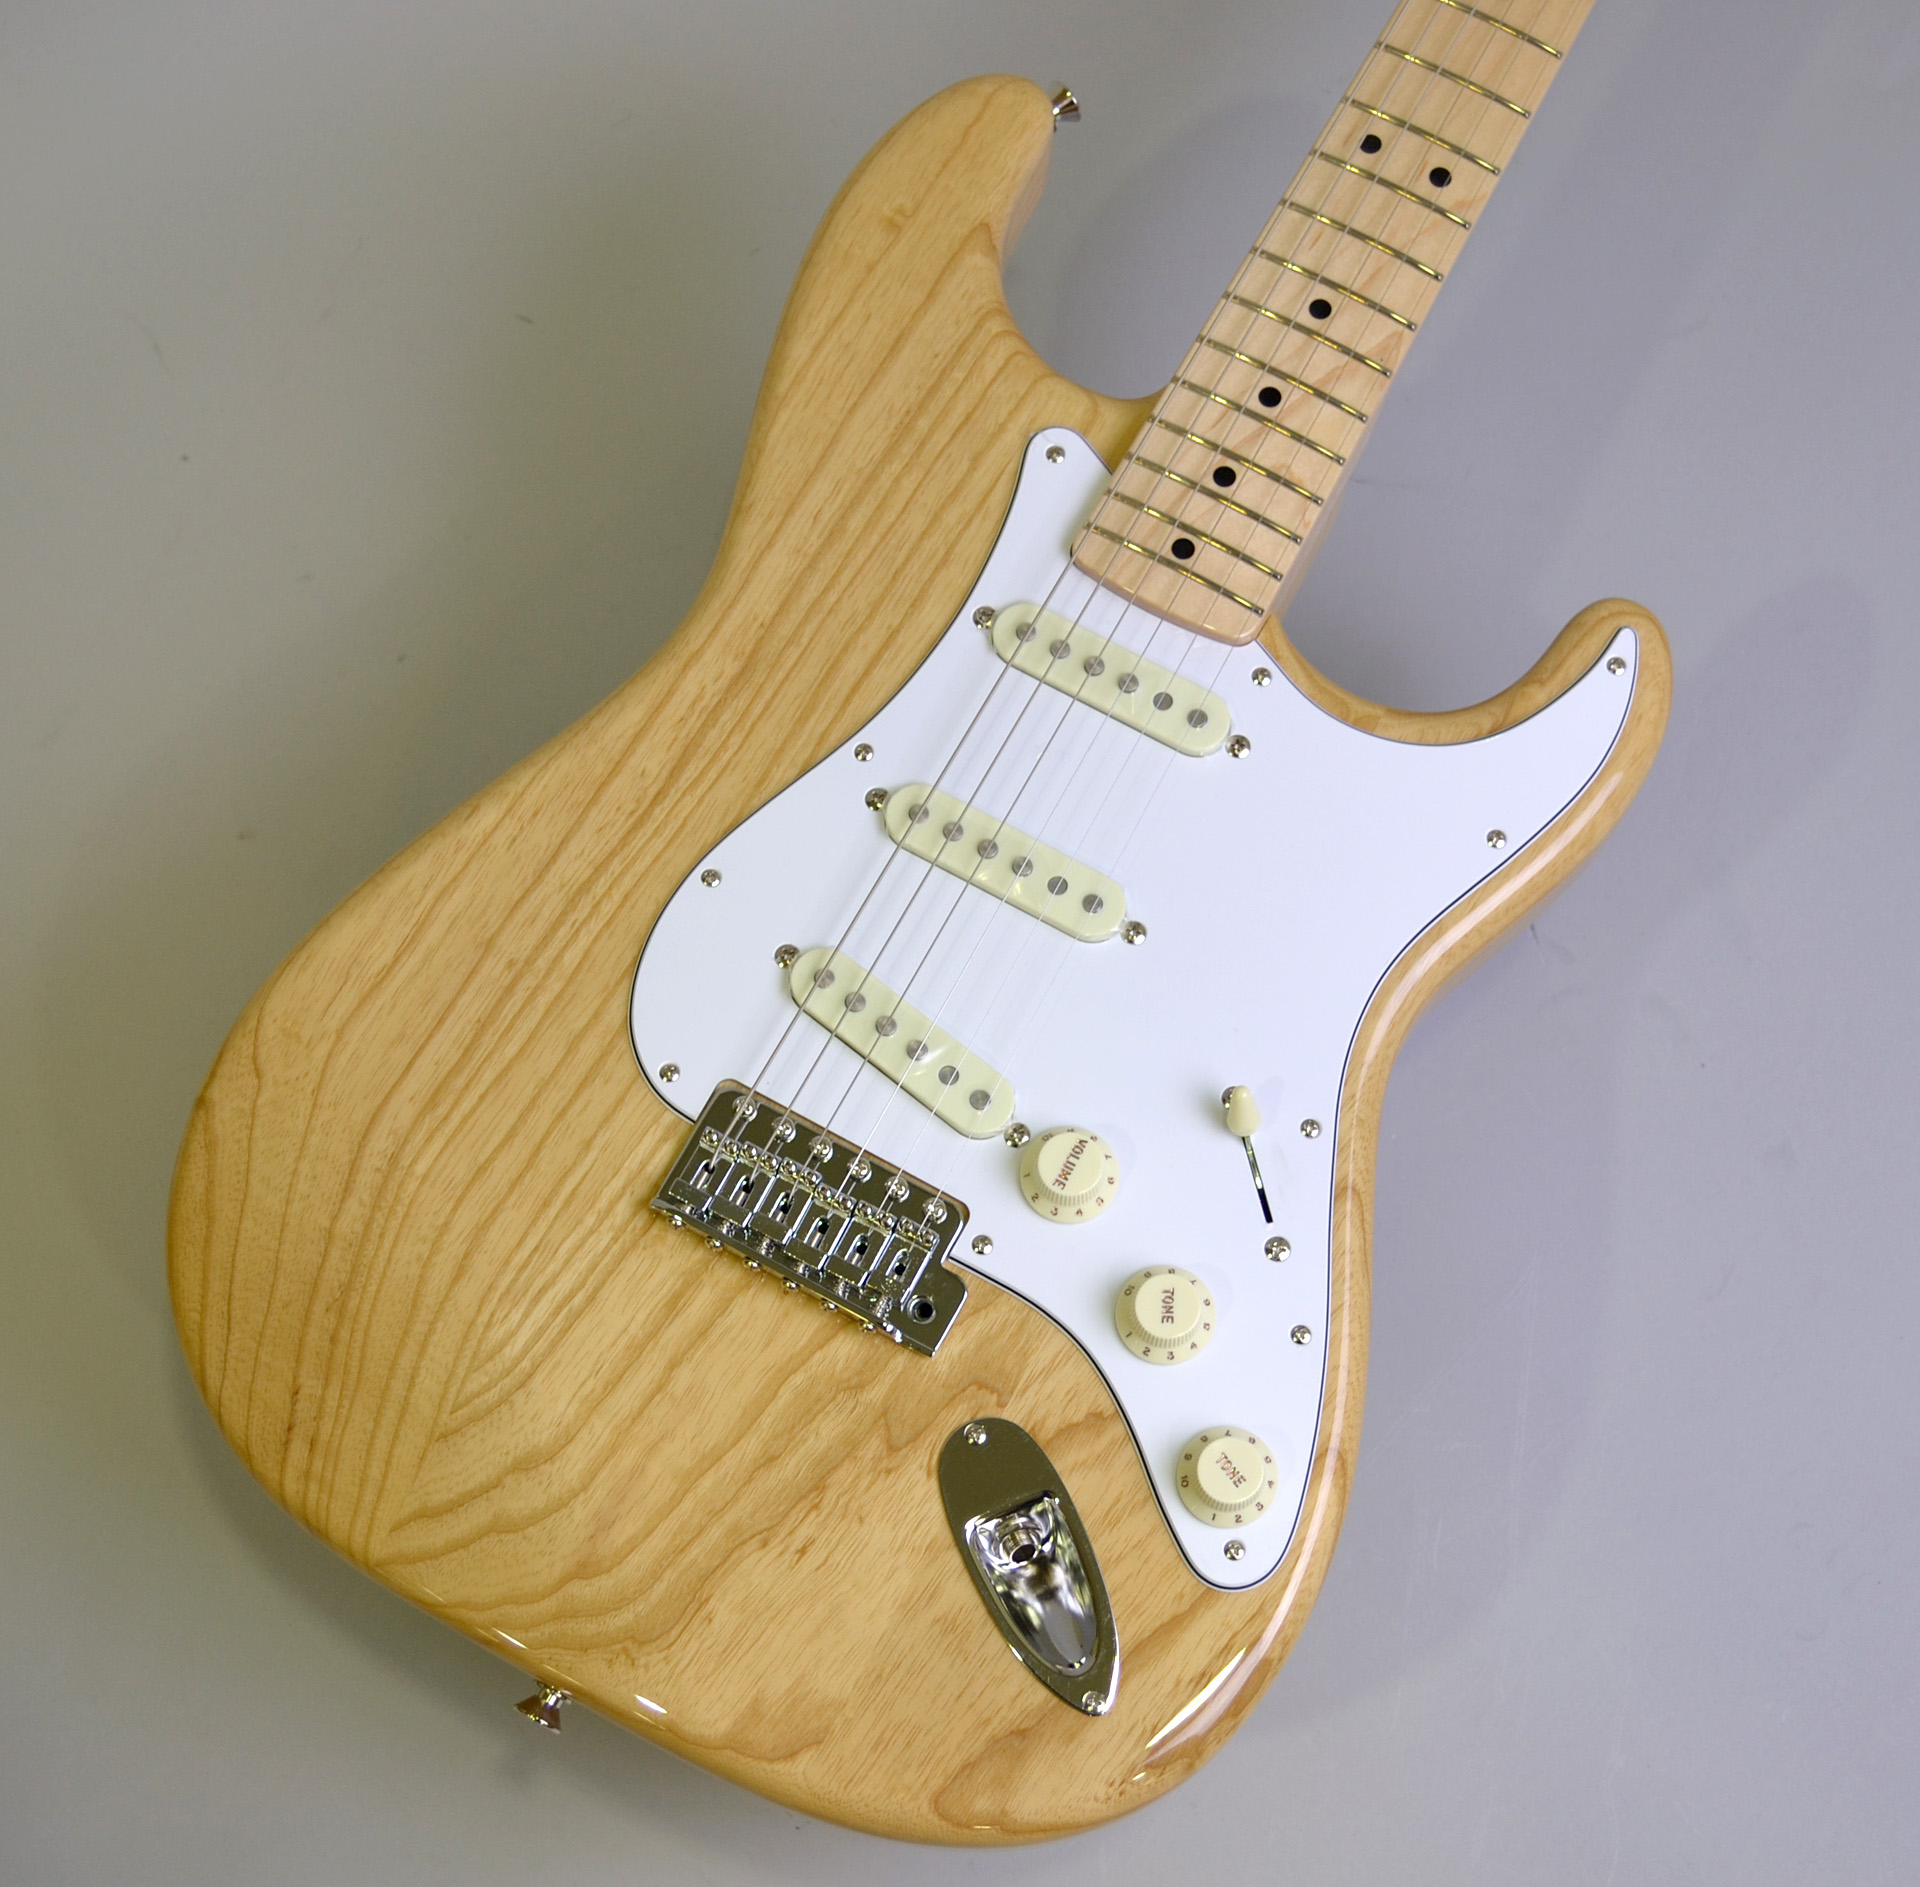 MADE IN JAPAN TRADITIONAL 70S STRATCASTER ASH MAPLE